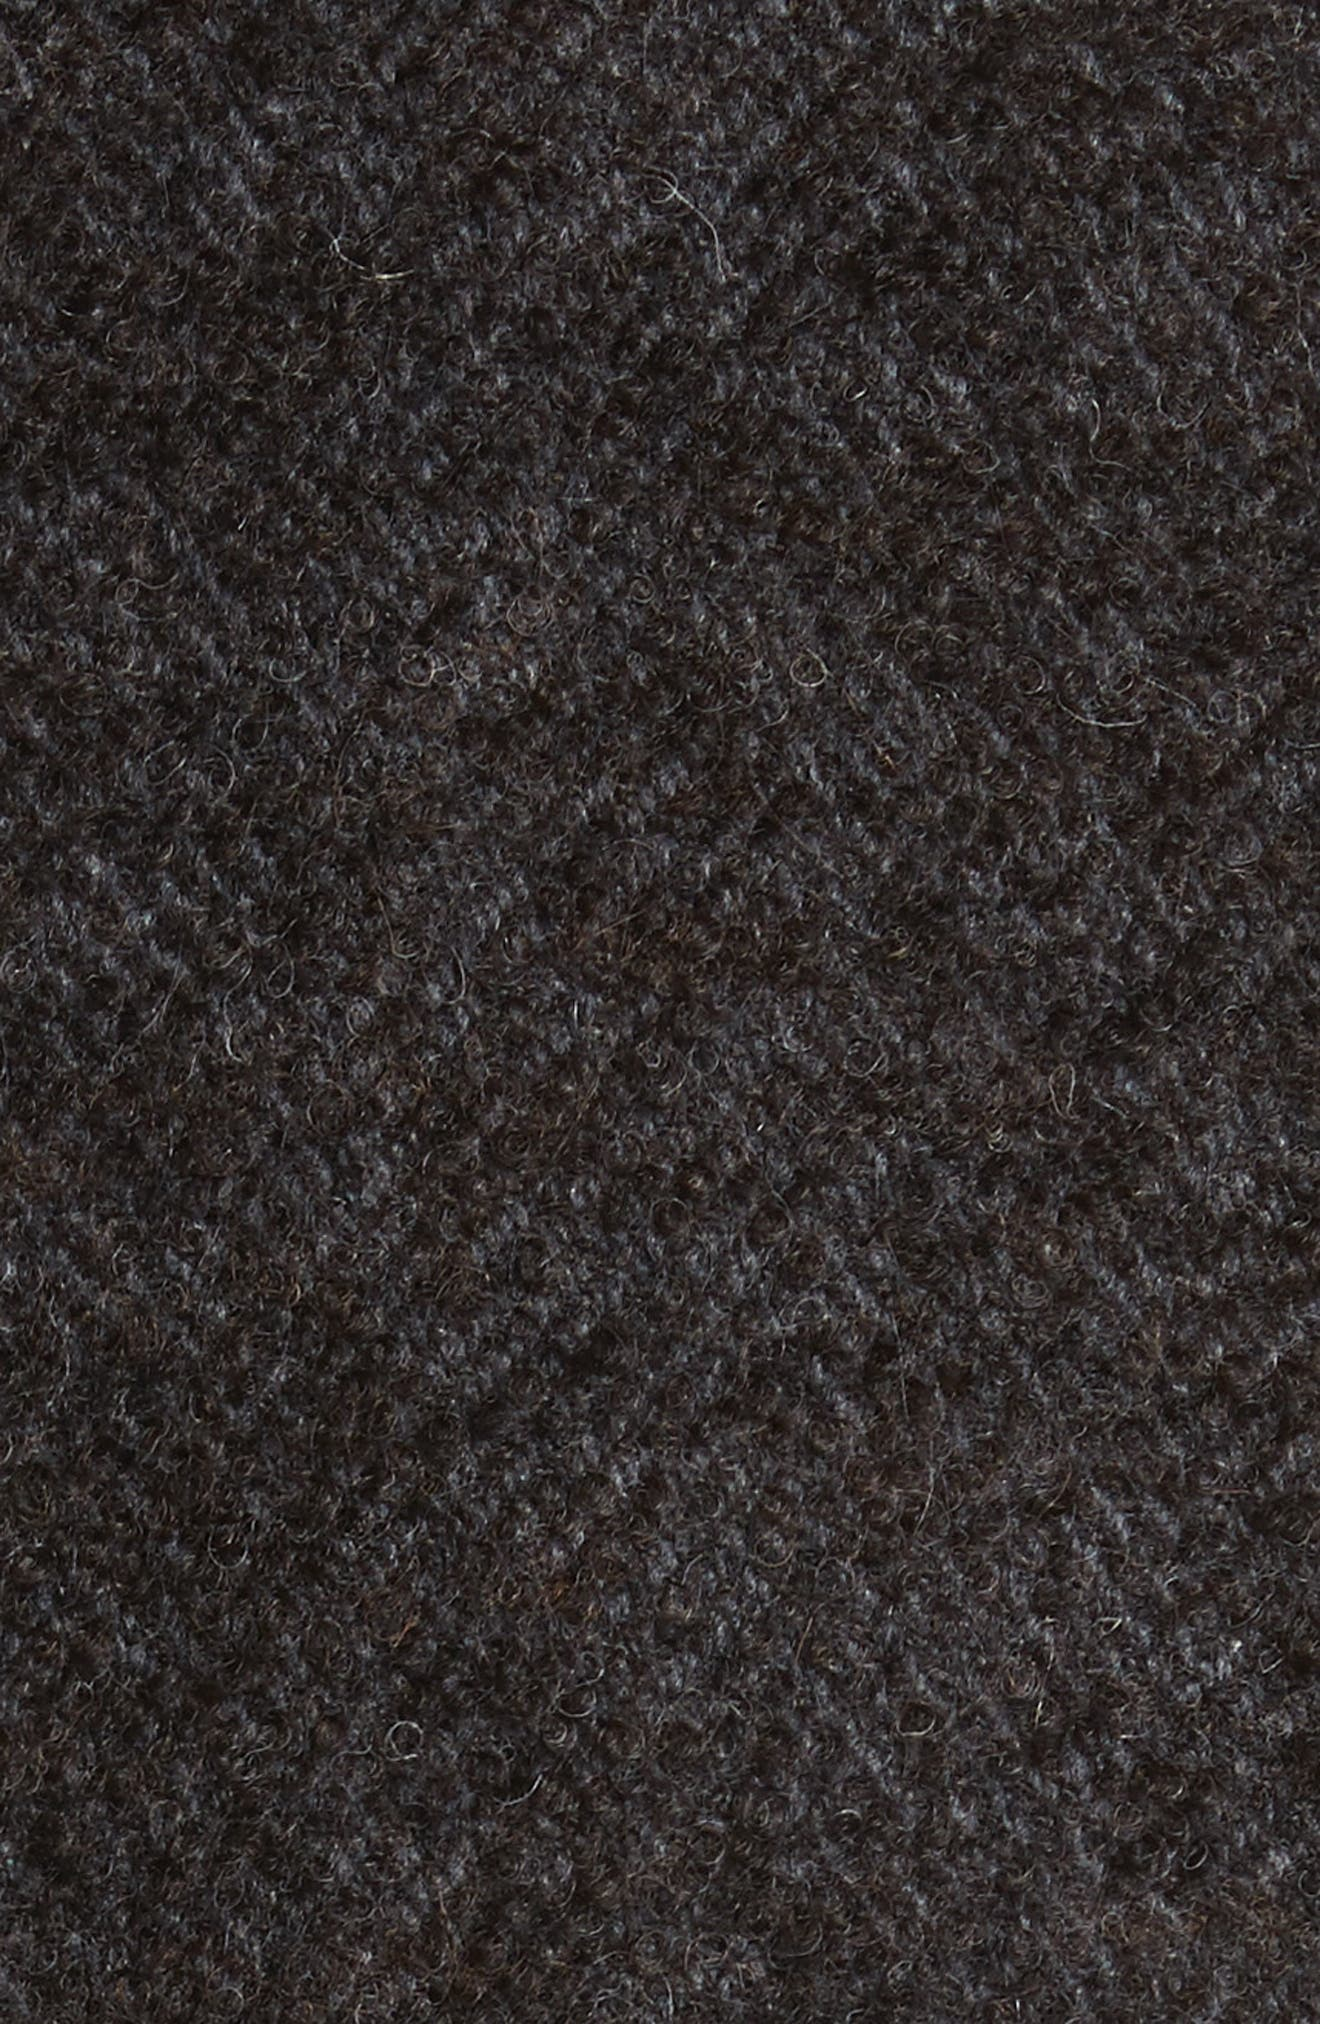 Walsh Wool Blend Topcoat,                             Alternate thumbnail 5, color,                             Brown/ White